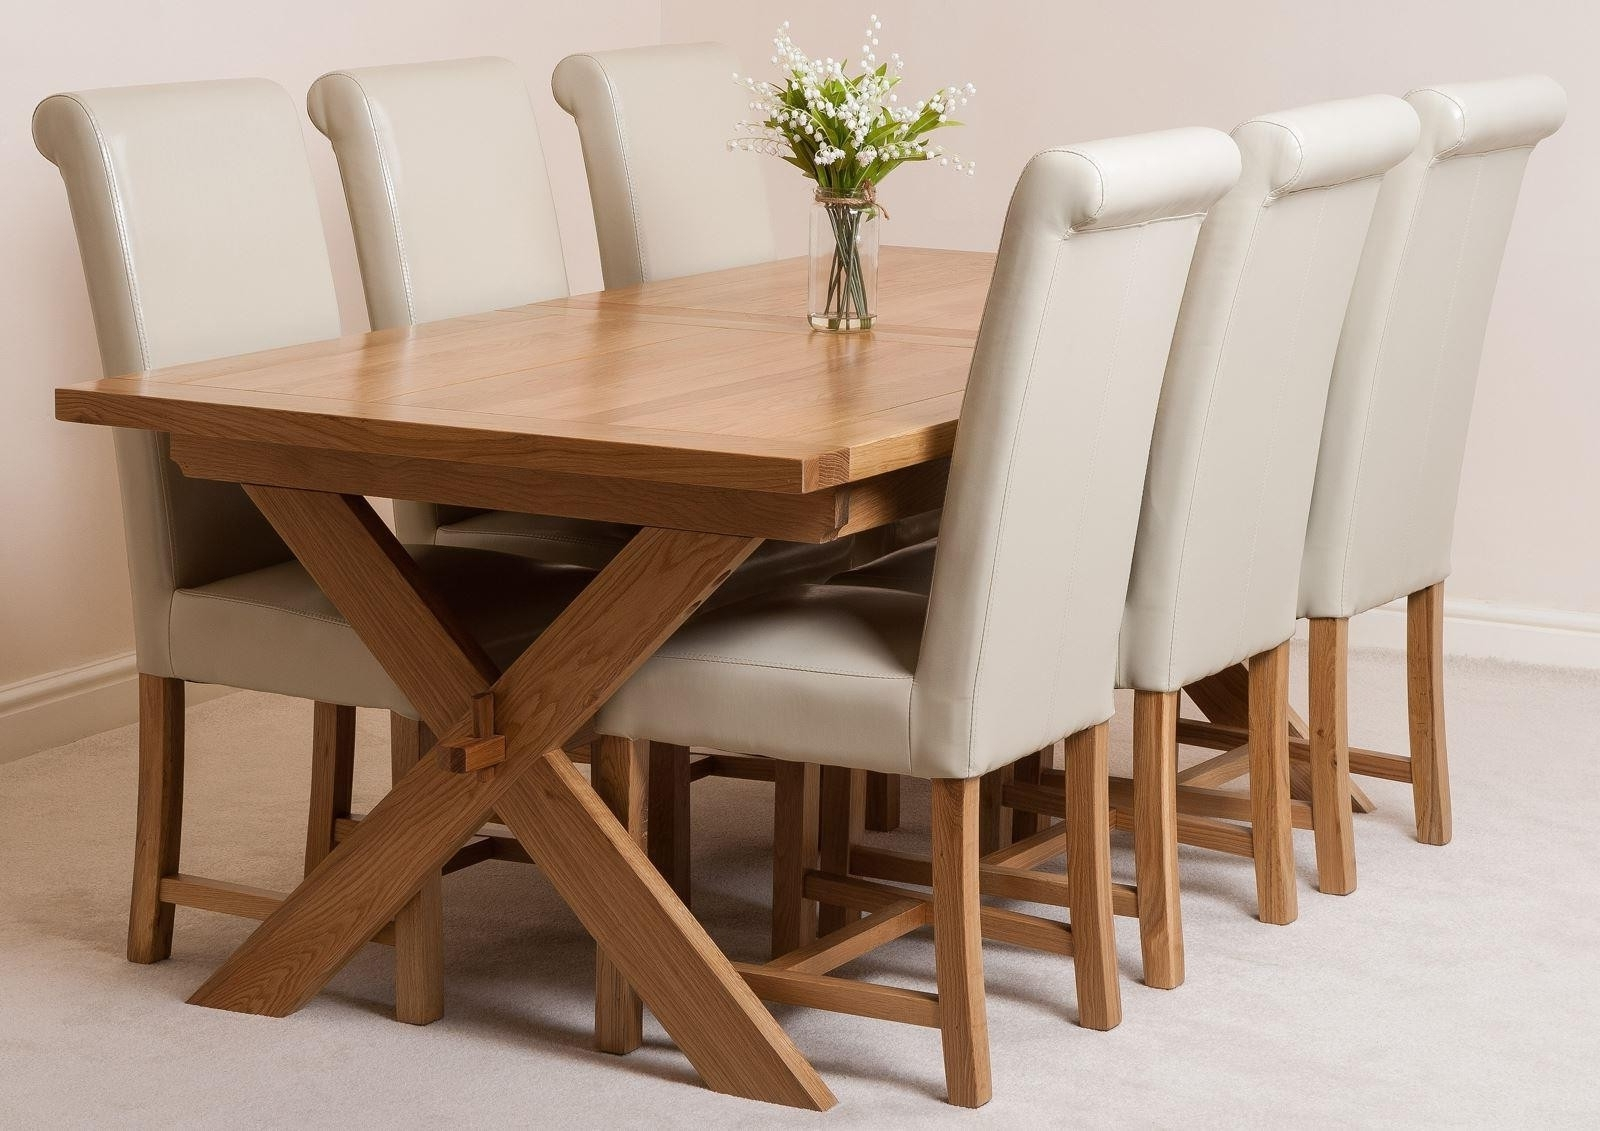 Oak Furniture King (View 7 of 25)